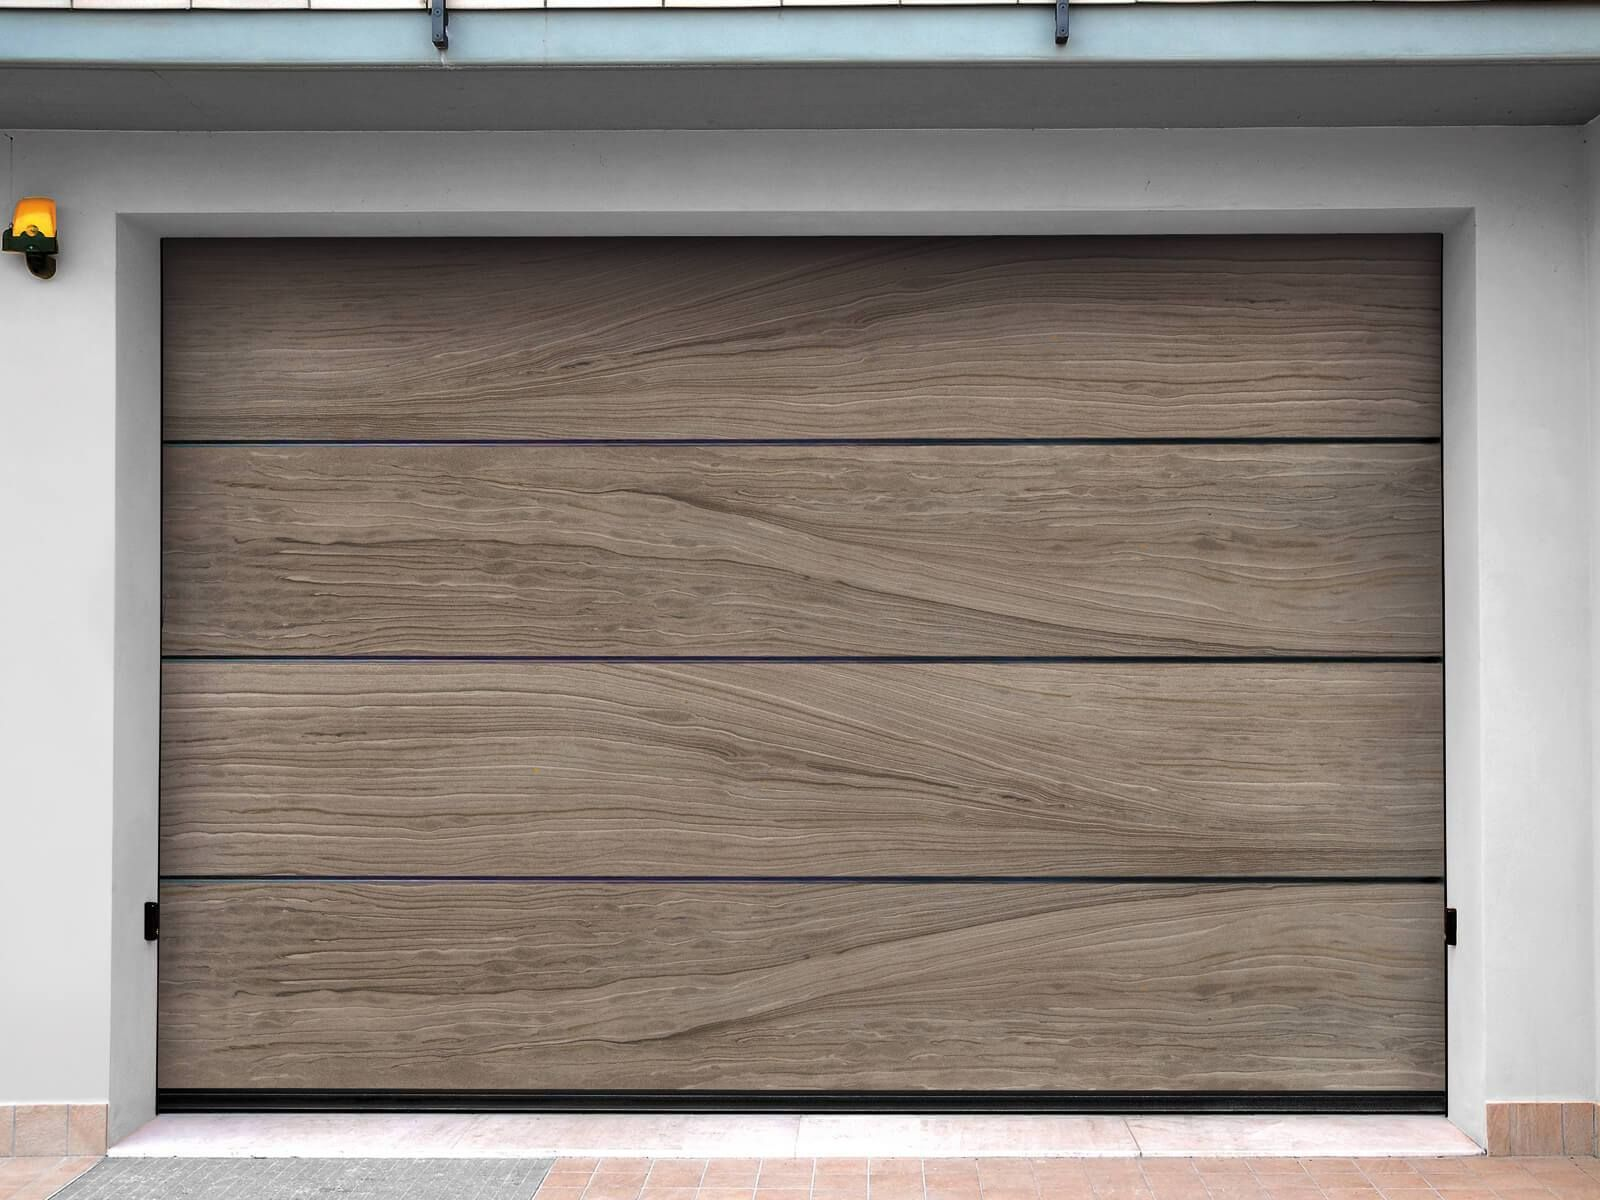 Le Perle Designer Overhead Garage Doors By Breda Are One Of A Kind